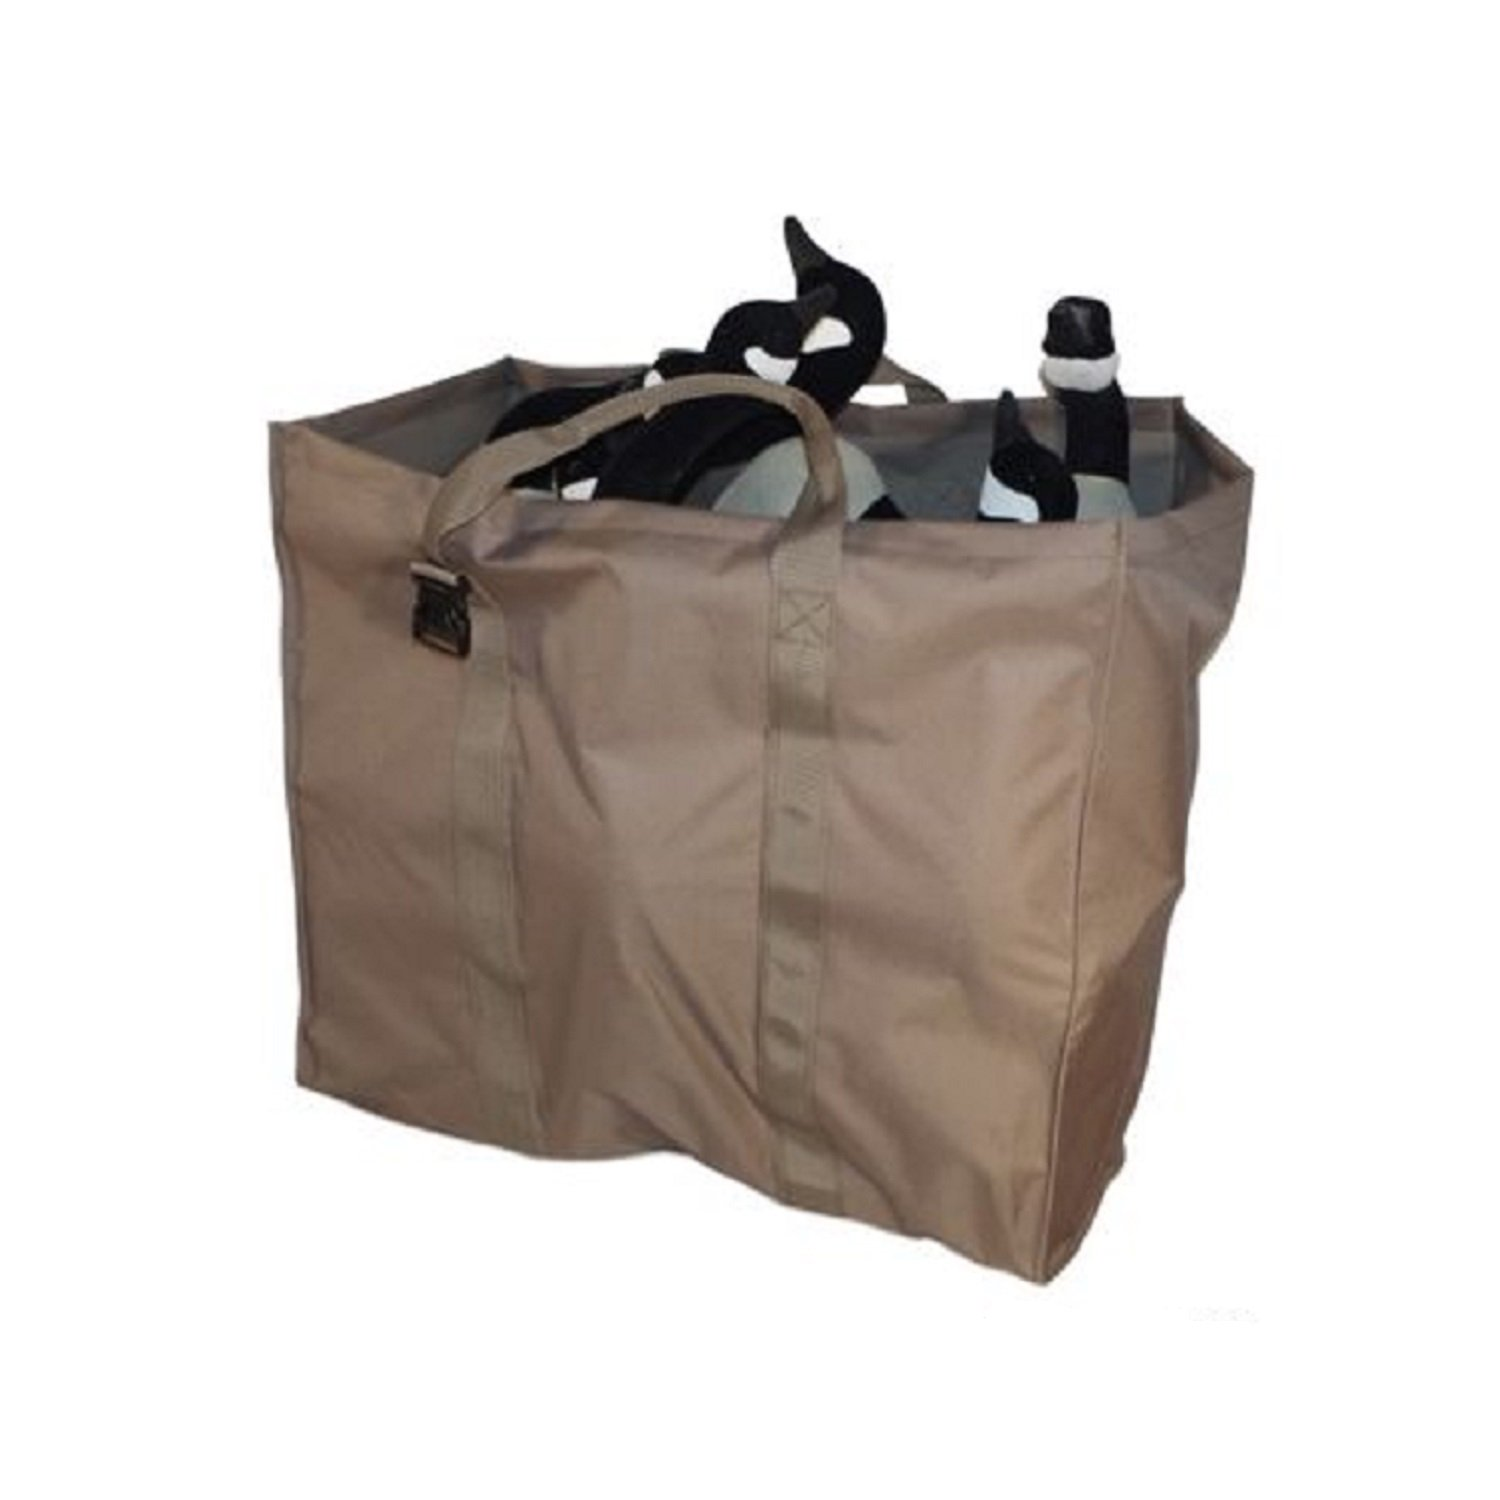 Landing Gear Waterfowl Slot Bag Full Body Goose Decoy Bag 10x10